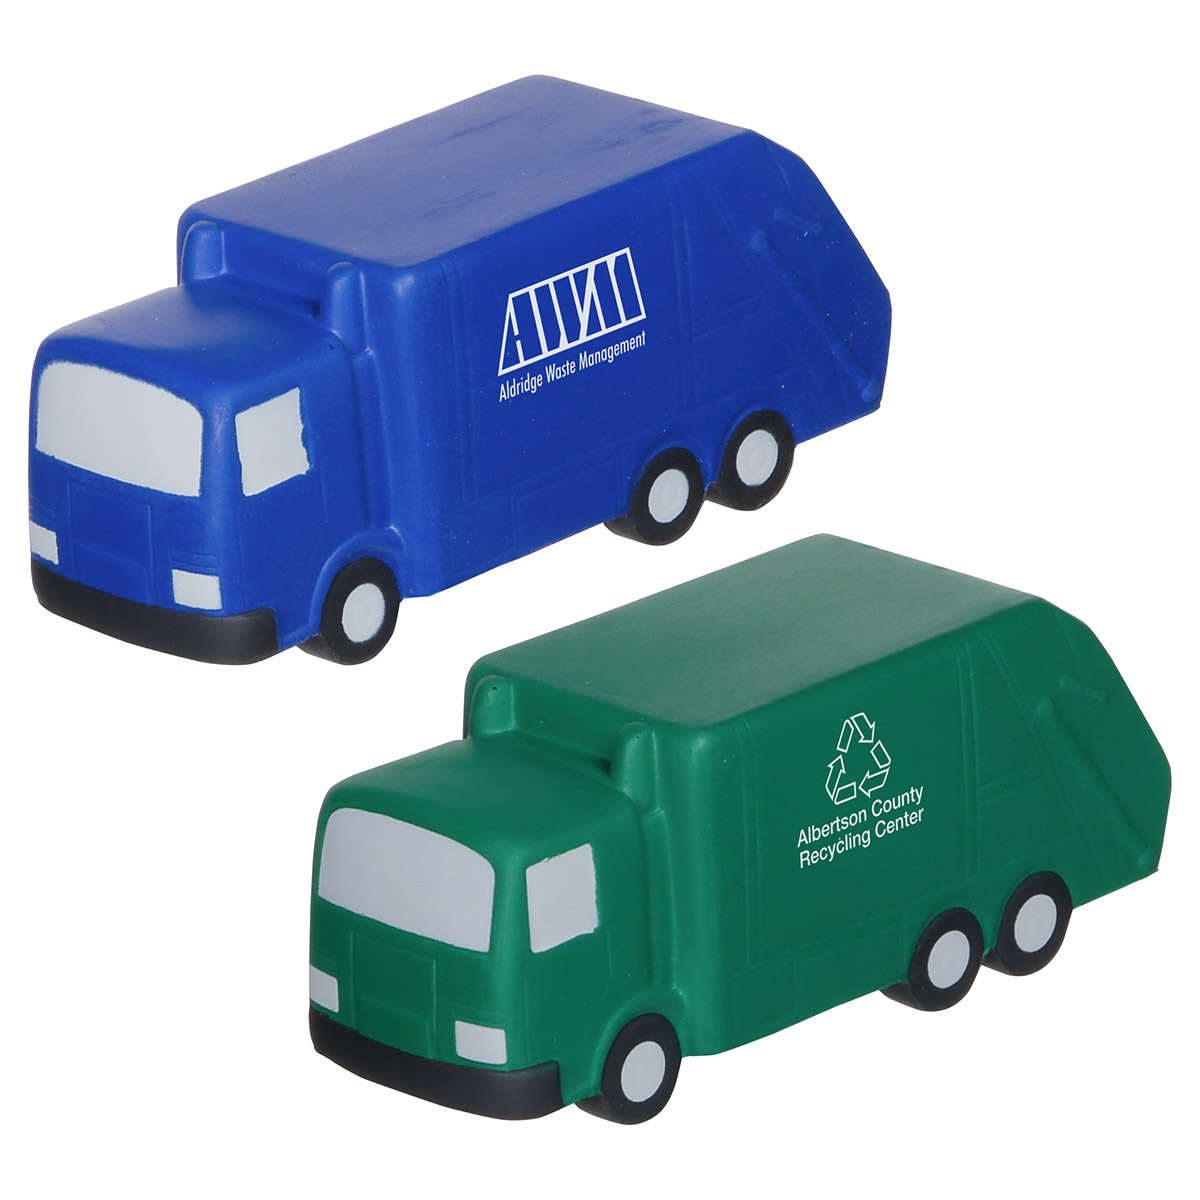 Garbage Truck Stress Reliever, LCC-GB09, 1 Colour Imprint